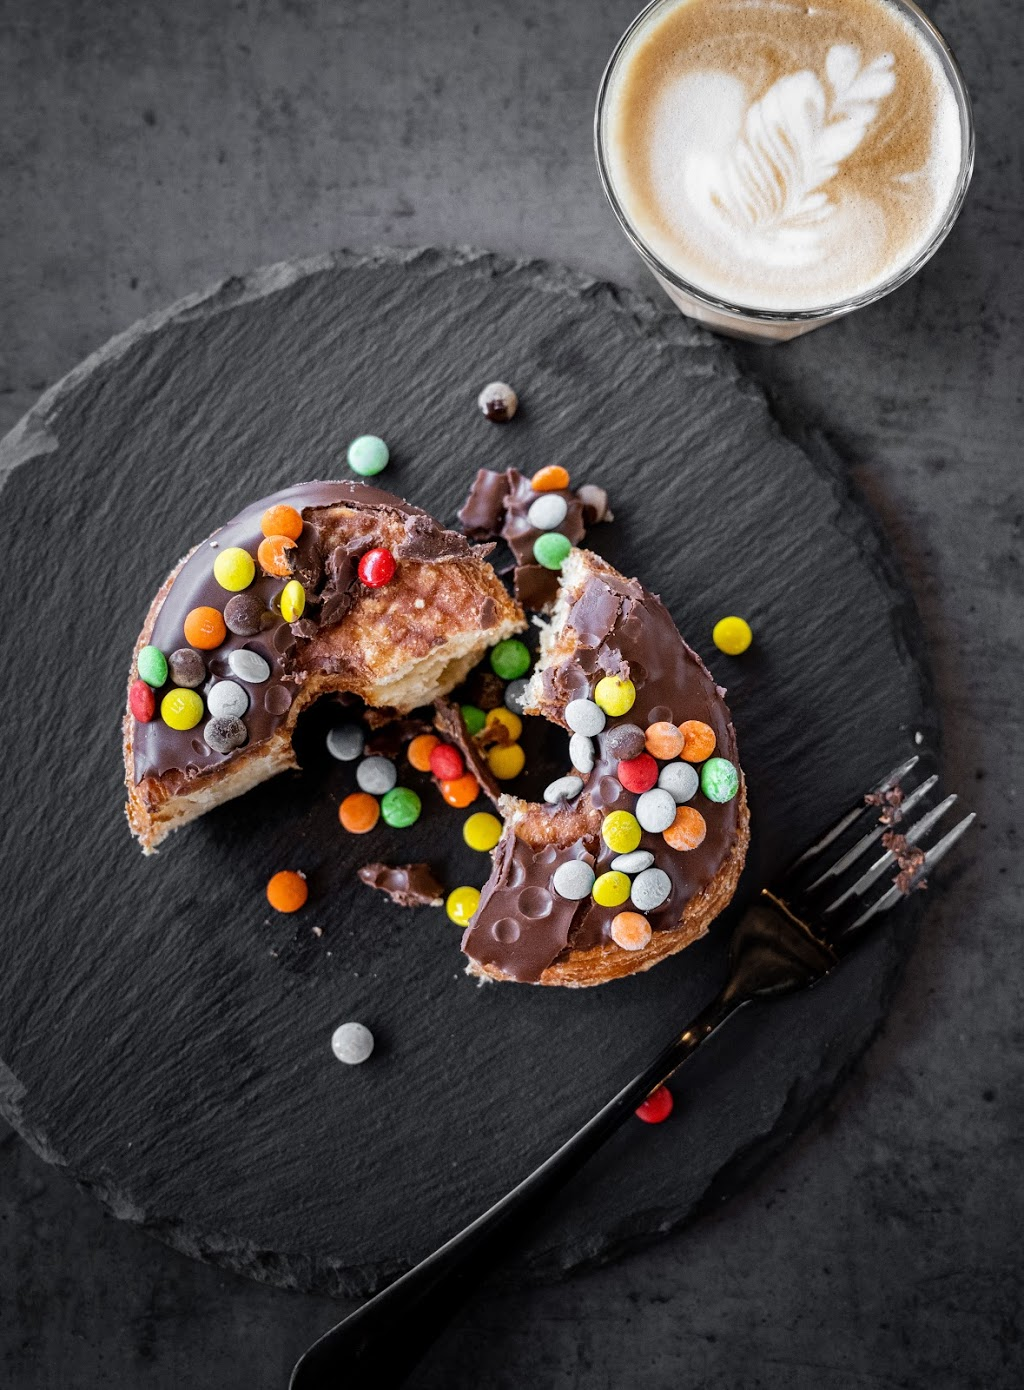 Coffee Mob | cafe | Shop 4/360 Hector St, Bass Hill NSW 2197, Australia | 0297385324 OR +61 2 9738 5324